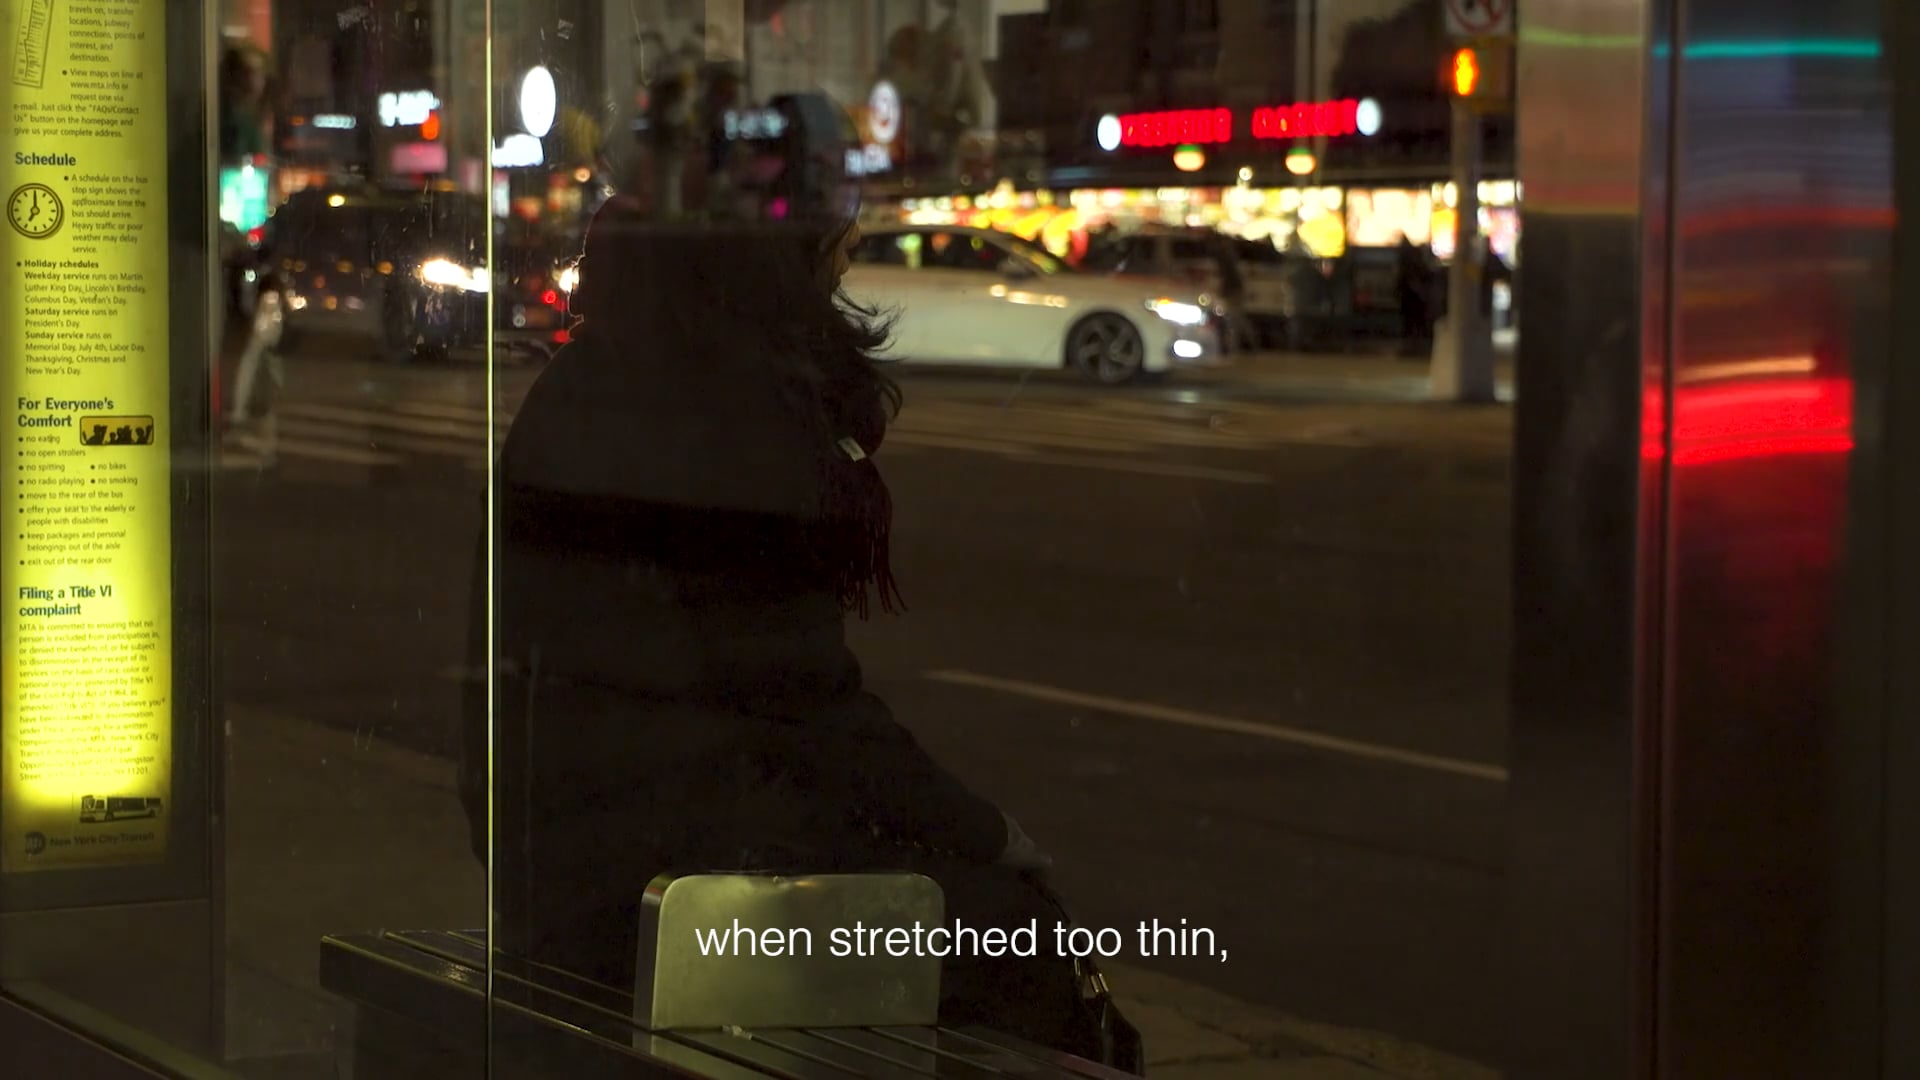 when stretched too thin (Trailer), 2020–2021. Single-channel HD video, color, sound, 14:12 min.